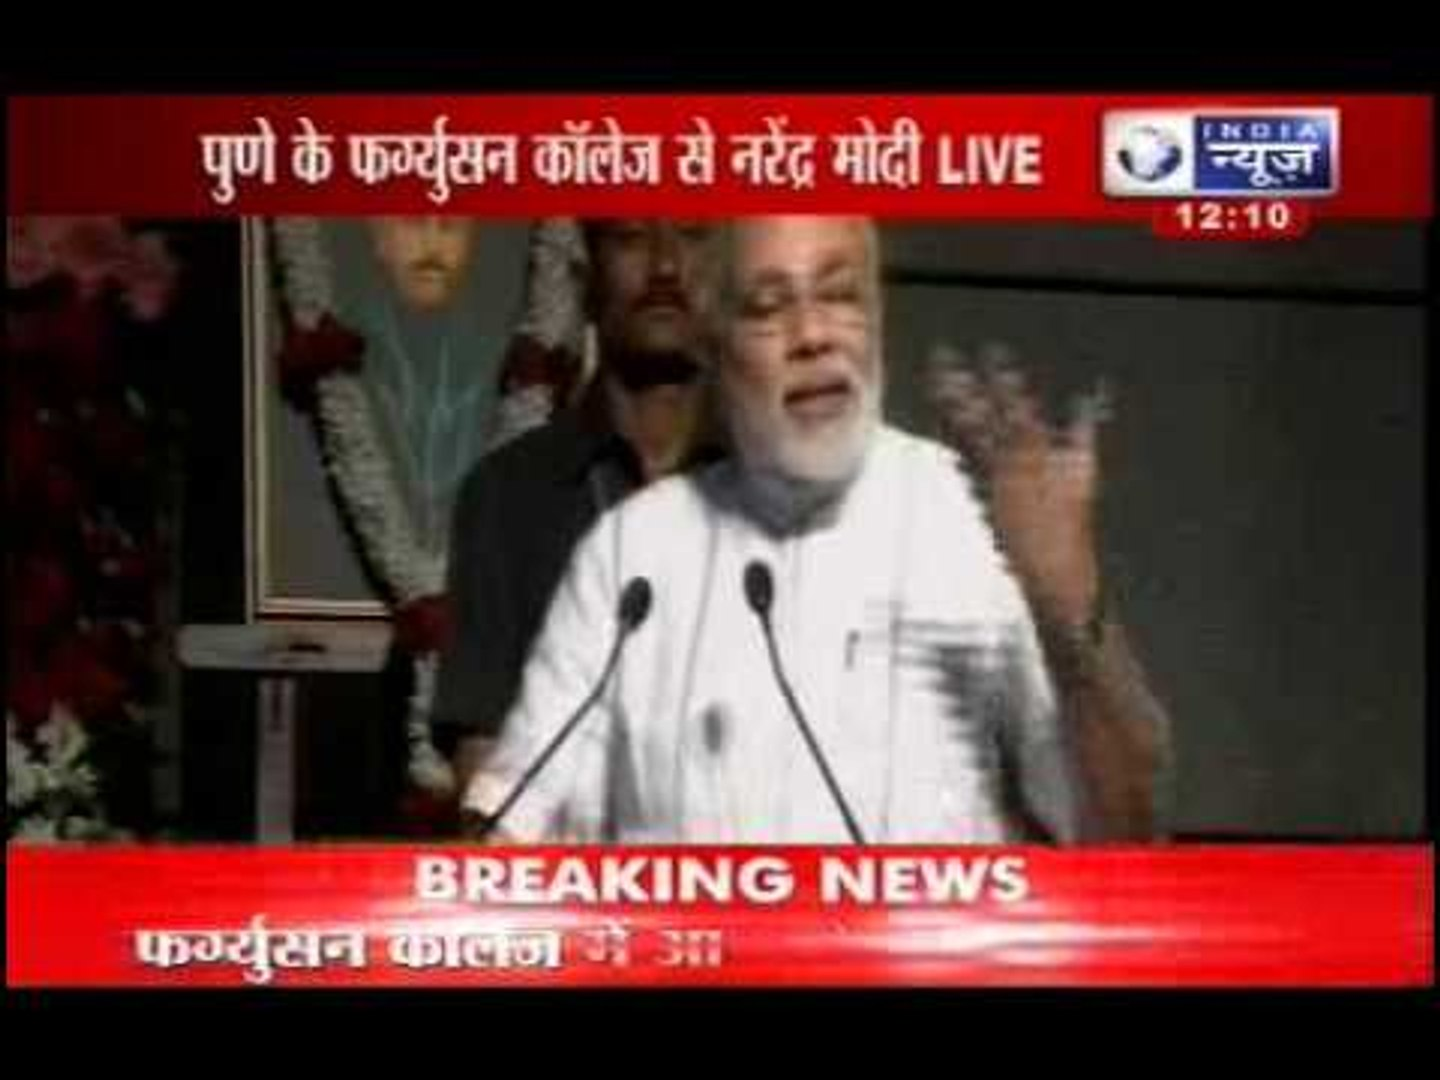 India News: Narendra Modi reaches Ferguson college